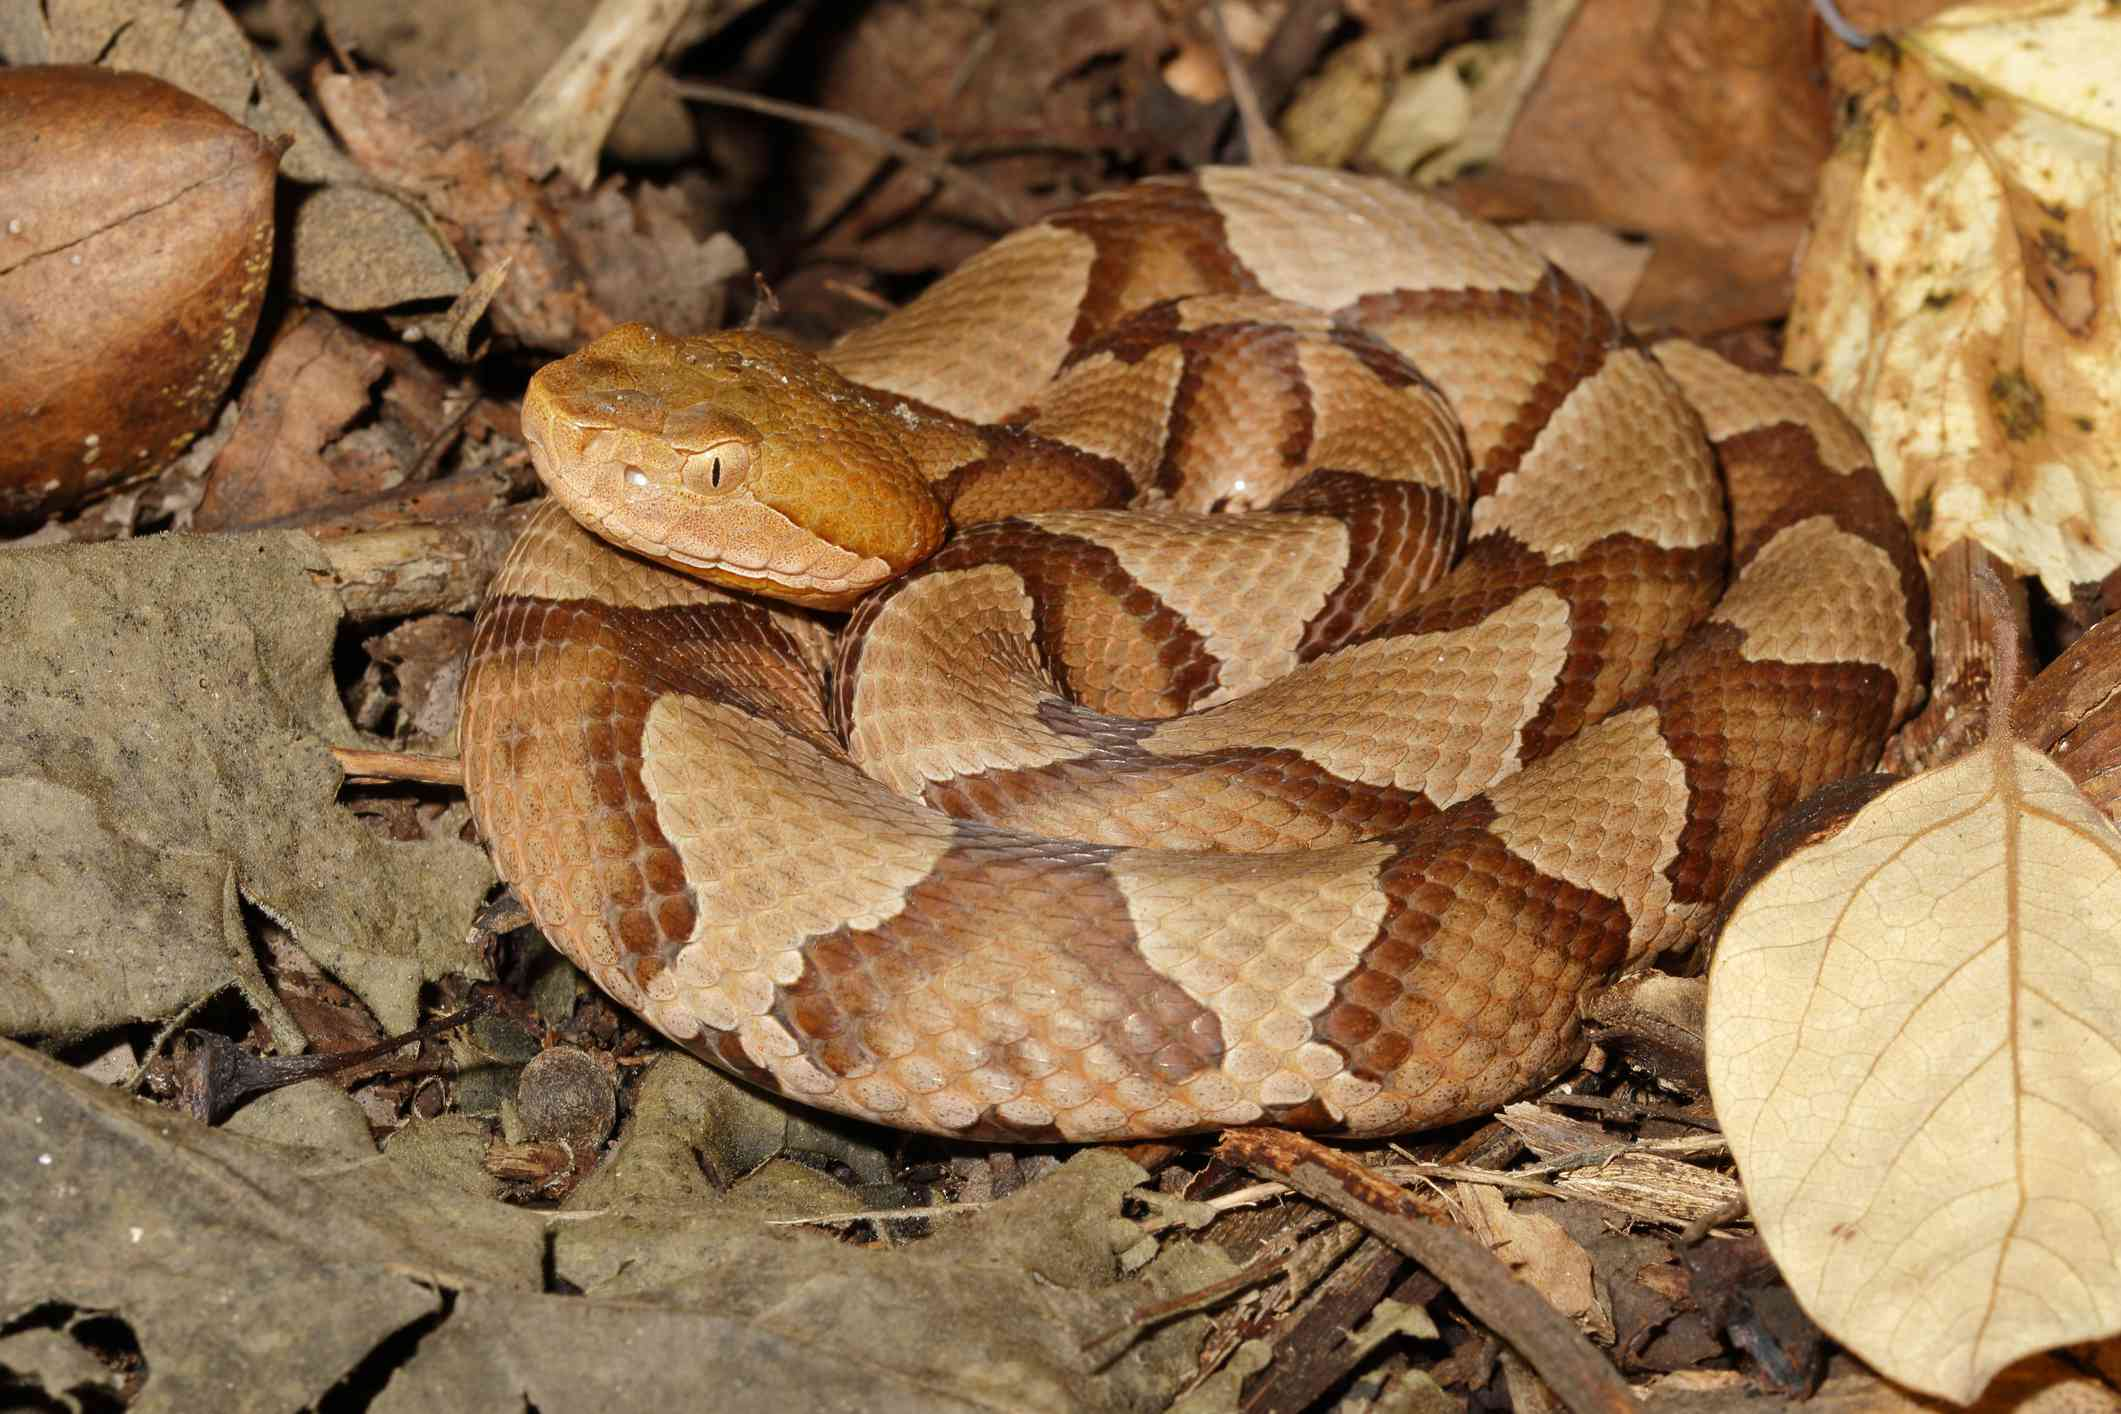 An orange and tan copperhead curled up on dried leaves